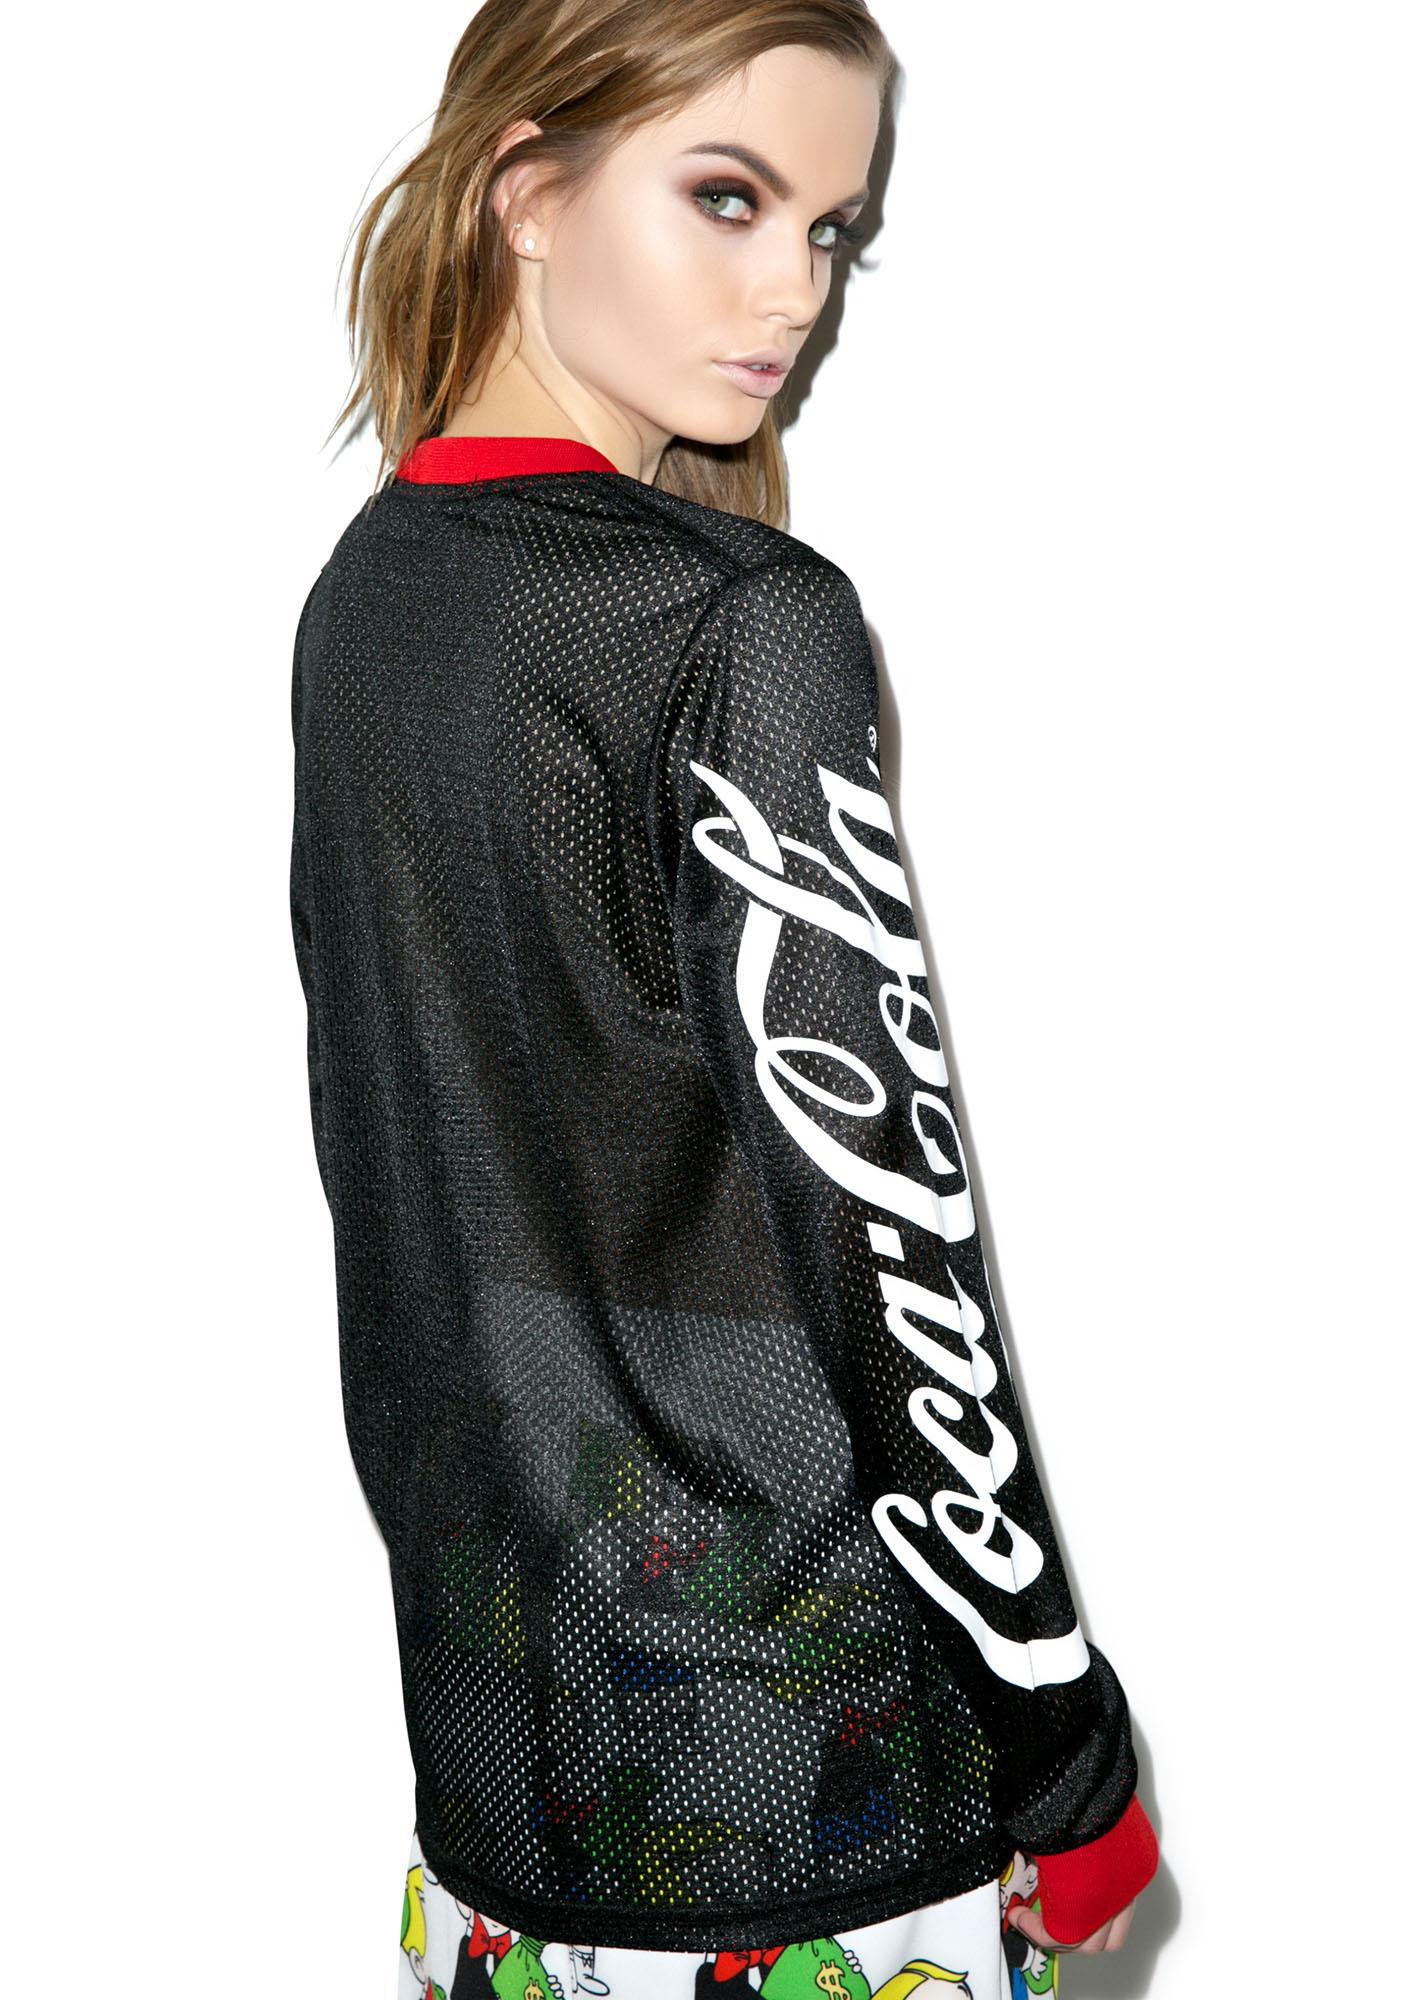 Joyrich Coco-Cola Mesh Long Sleeve Tee